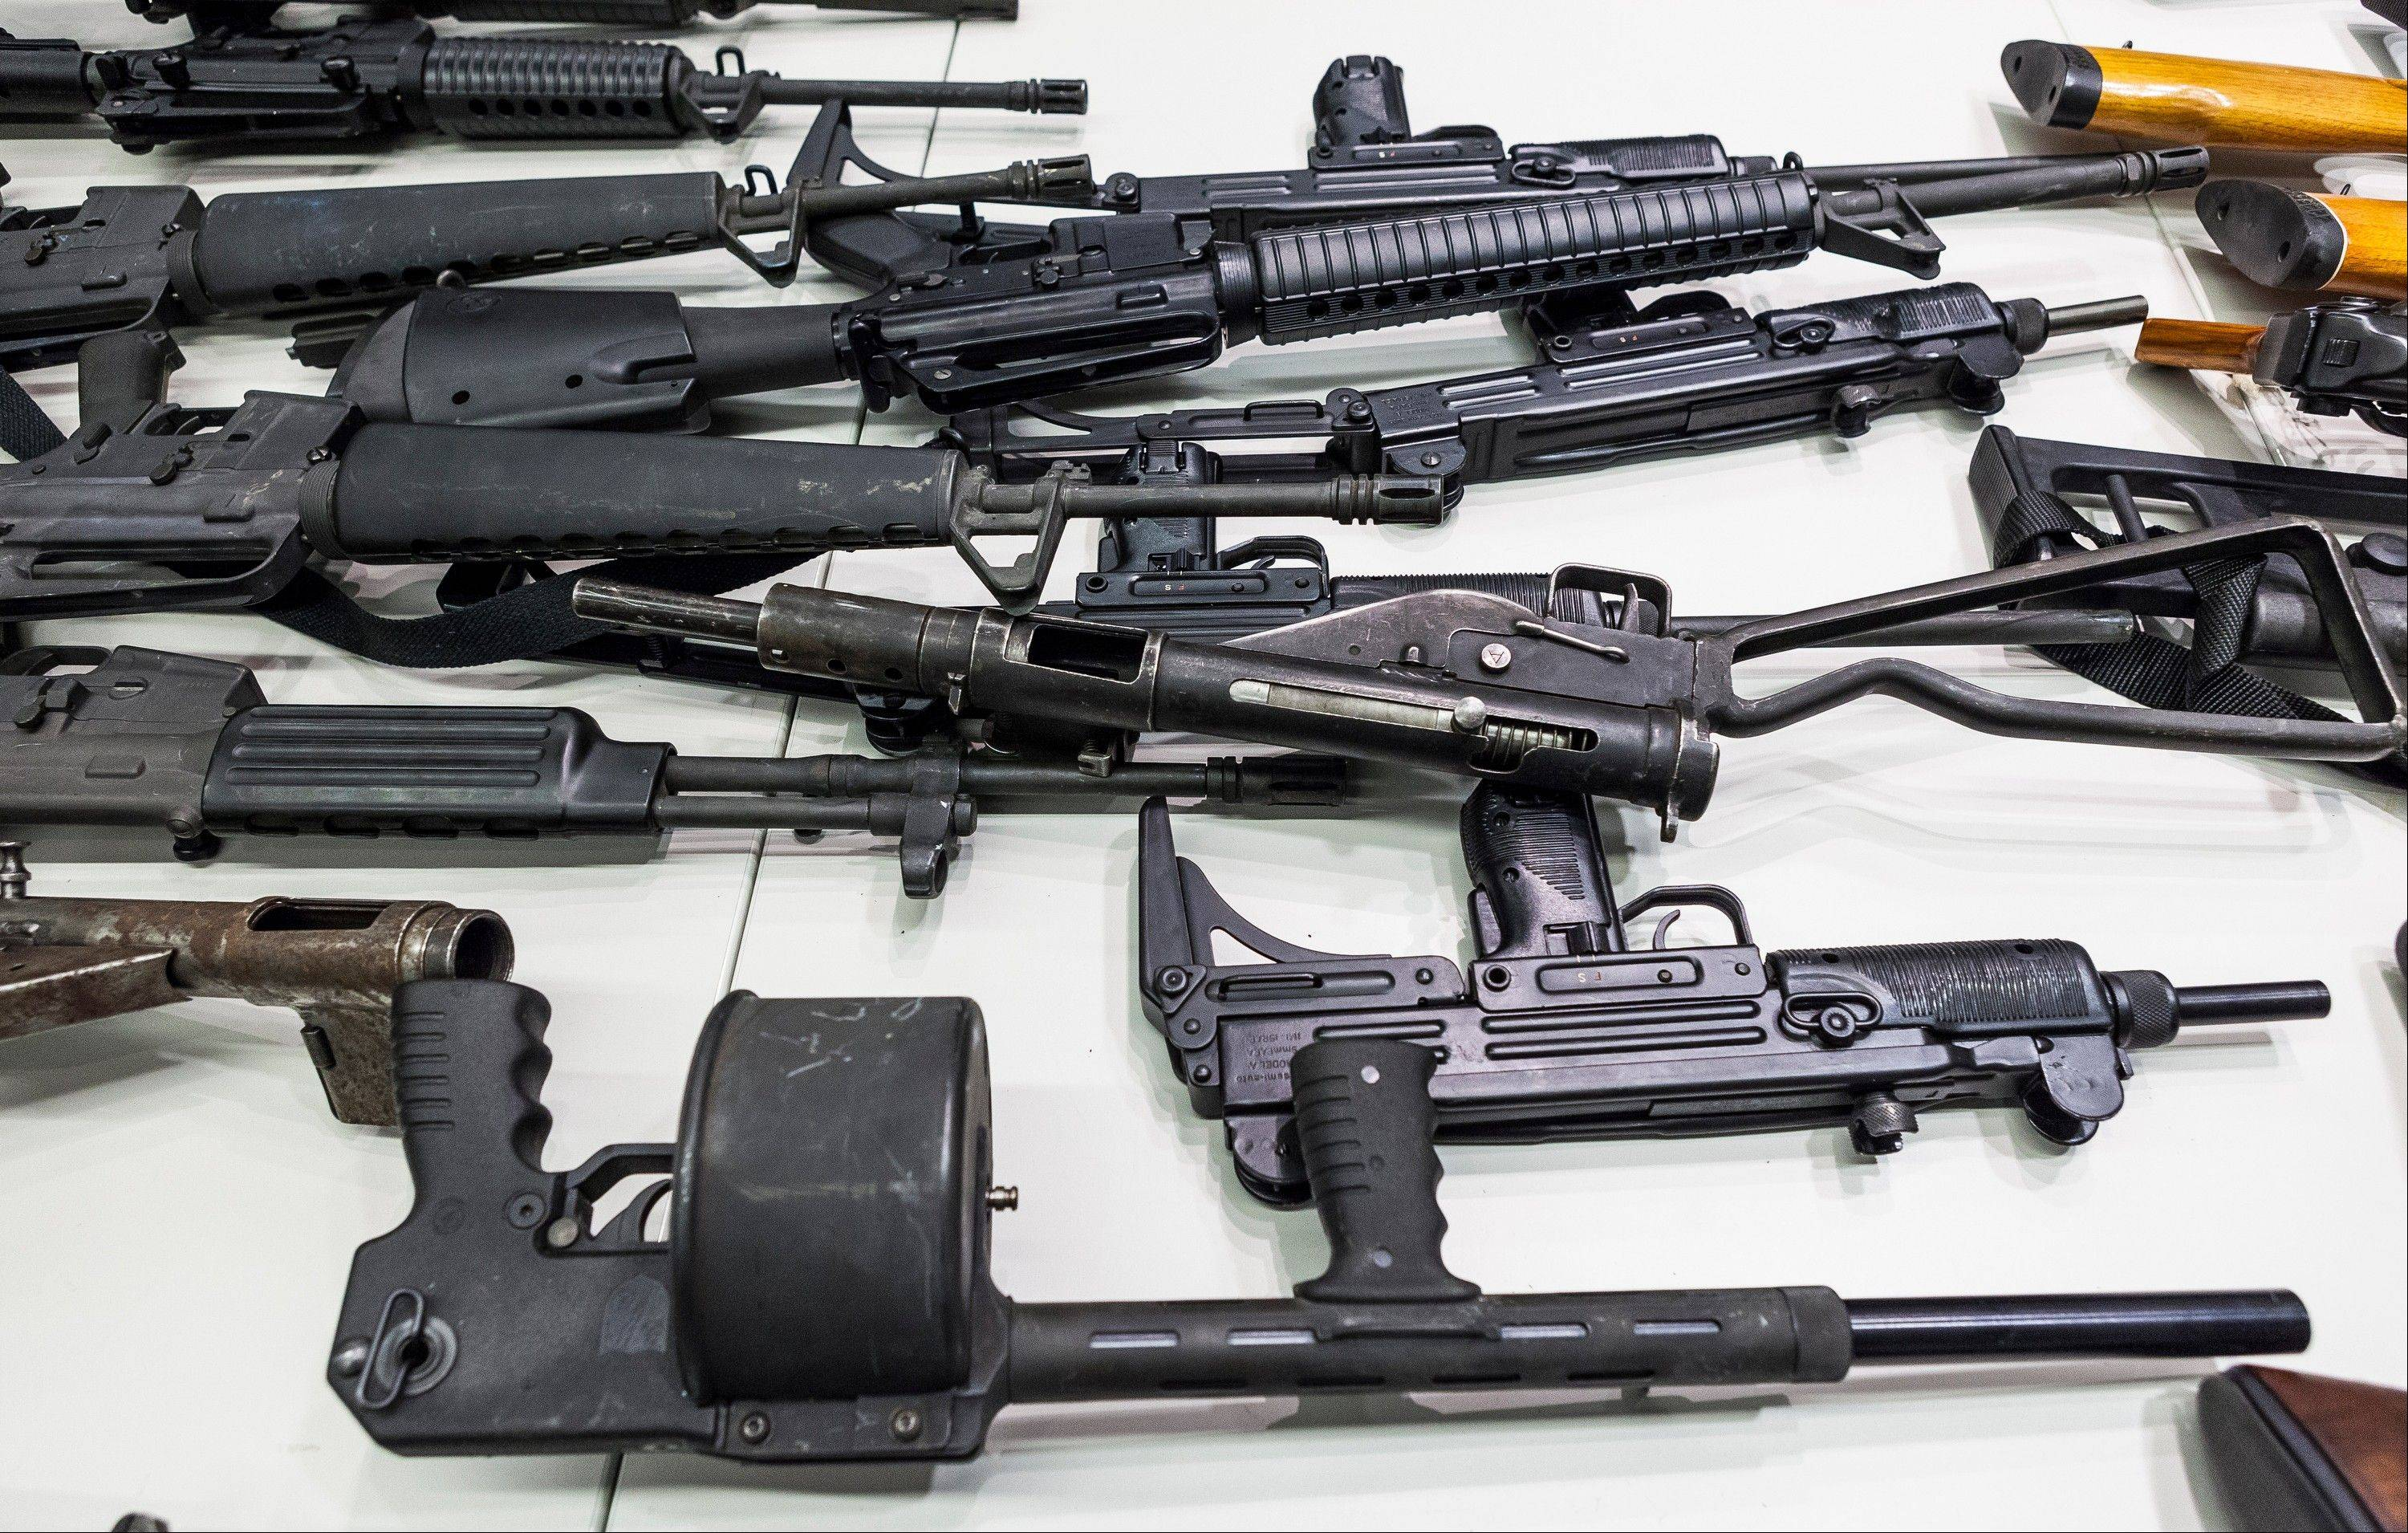 Buffalo Grove village officials this week approved a ban on some types of firearms under a measure they say will allow them to take more time with a decision on whether to enact a more wide-reaching ordinance outlawing assault weapons.